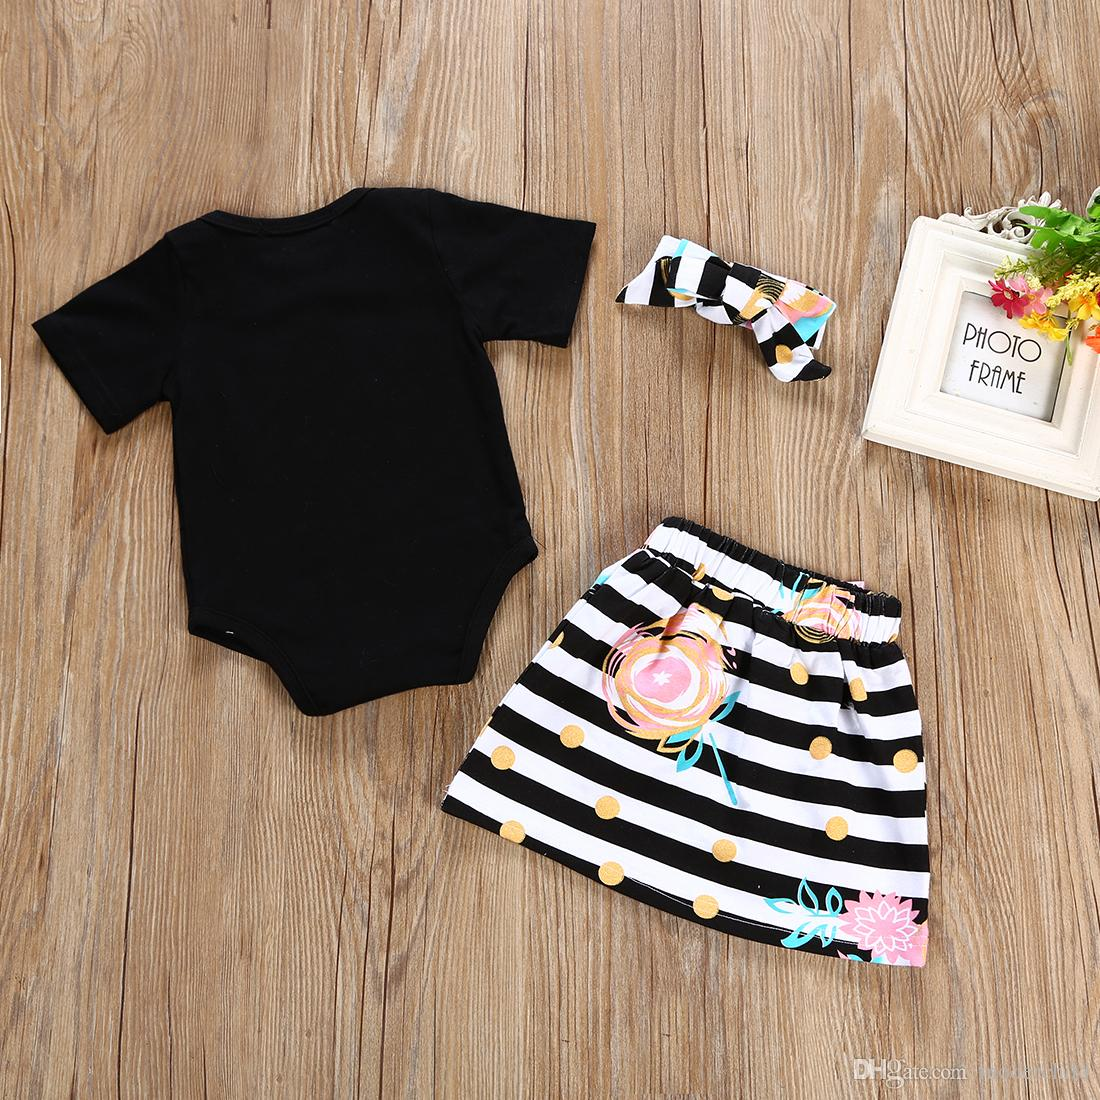 2018 baby girl summer clothes sets kids little sister short sleeve top/romper+tutu skirts+headband outfits